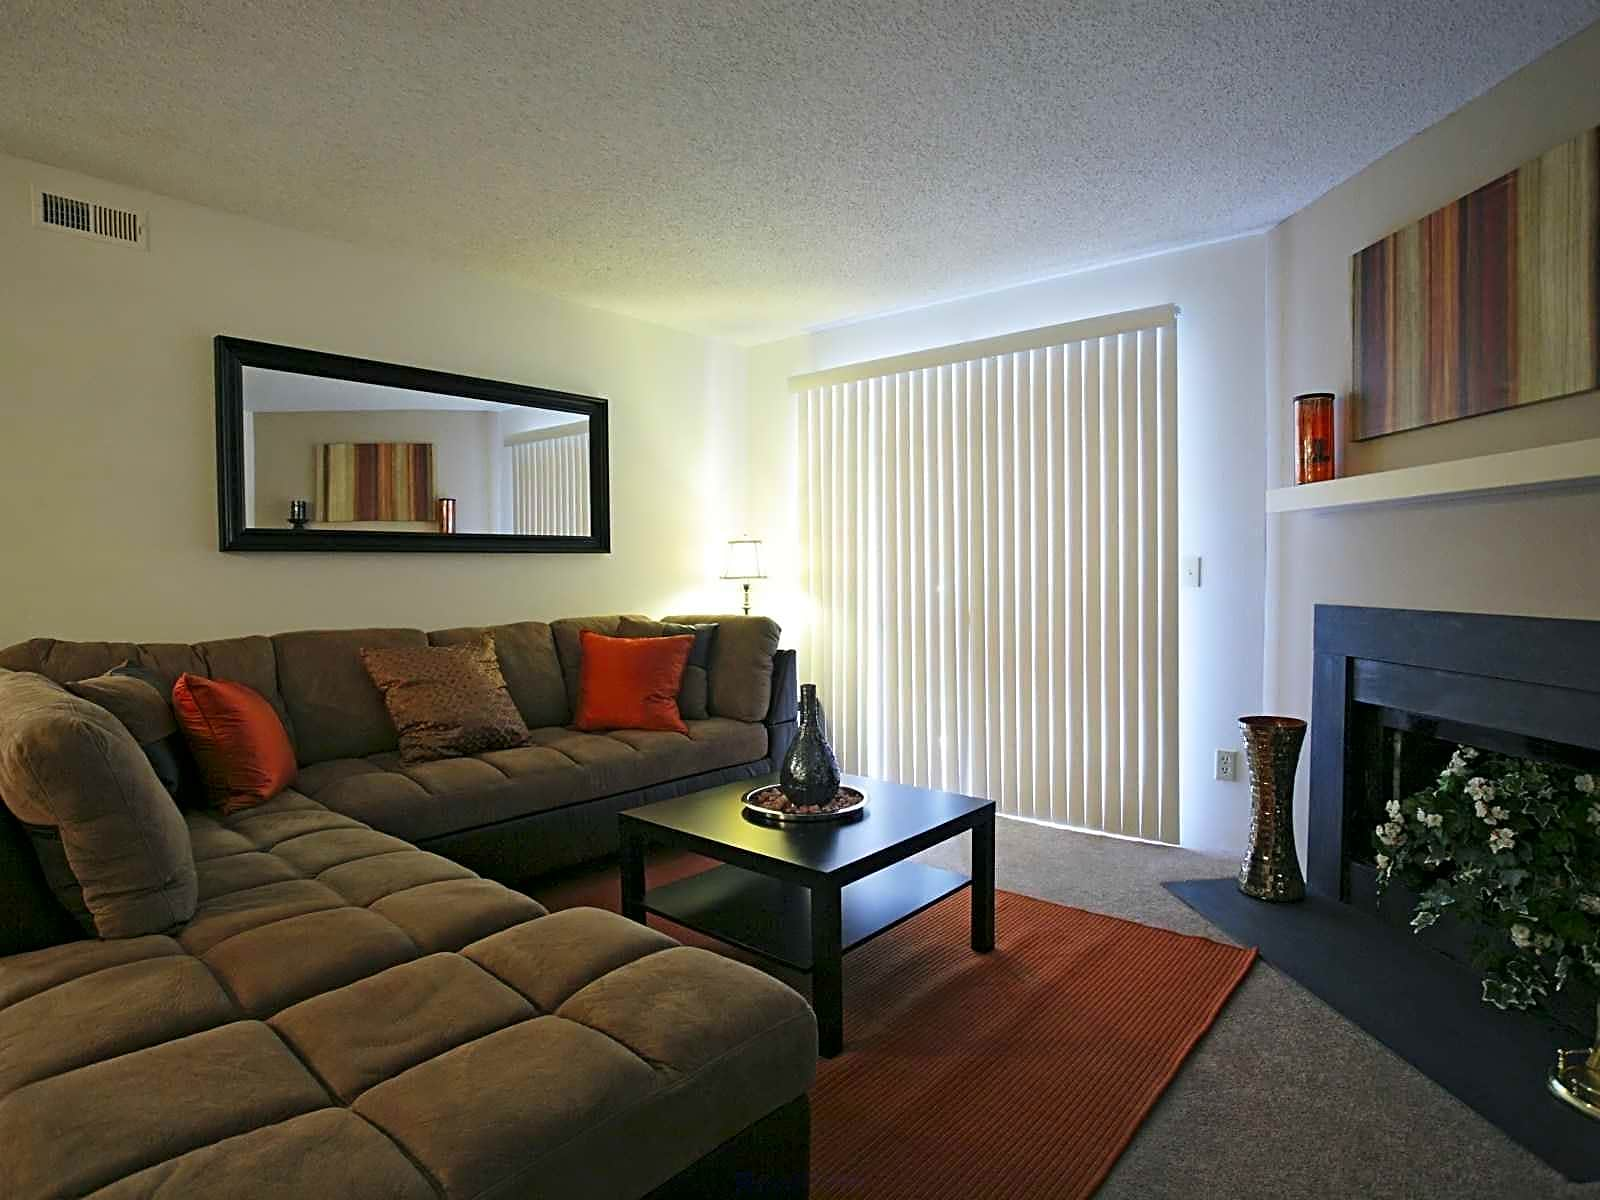 Photo: Spartanburg Apartment for Rent - $690.00 / month; 2 Bd & 1 Ba